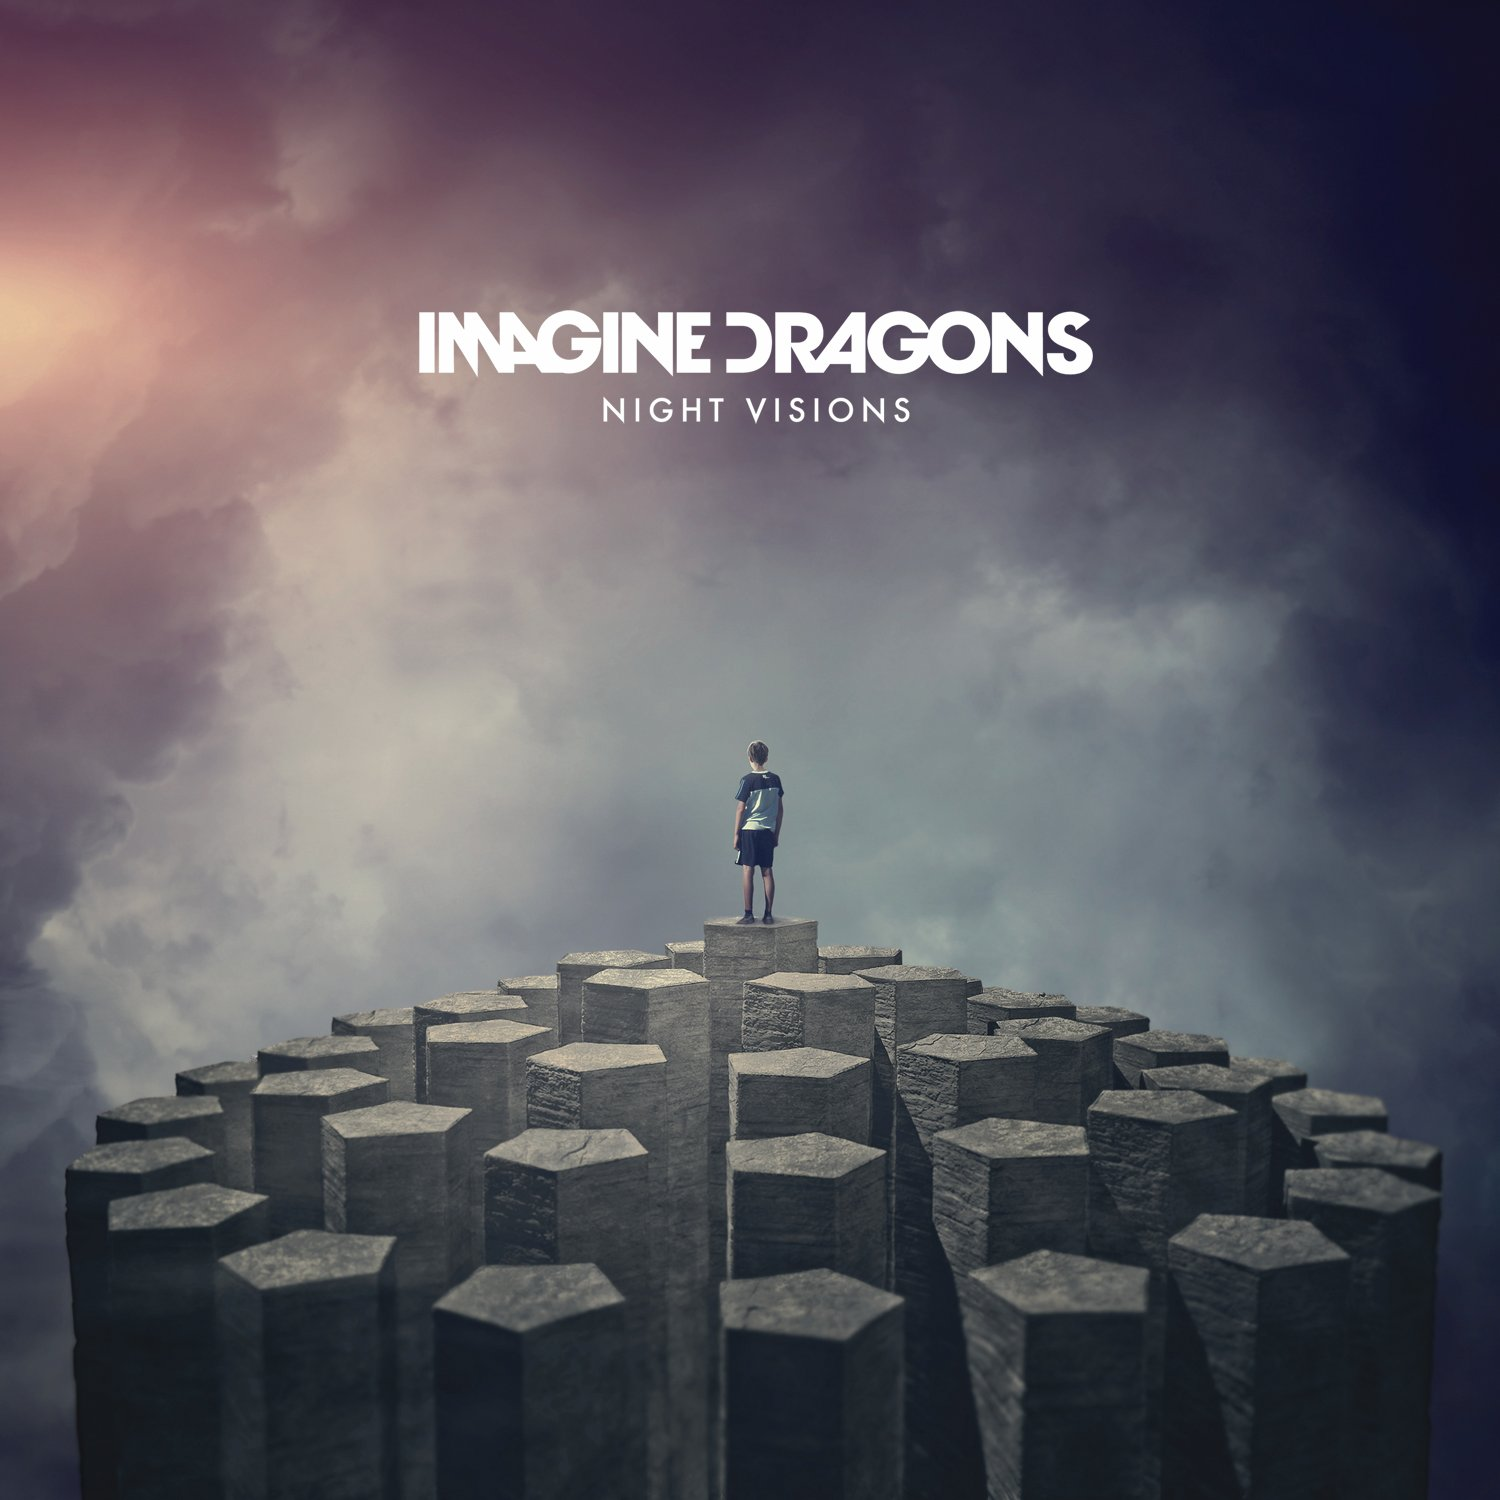 Imagine-Dragons-Night-Visions